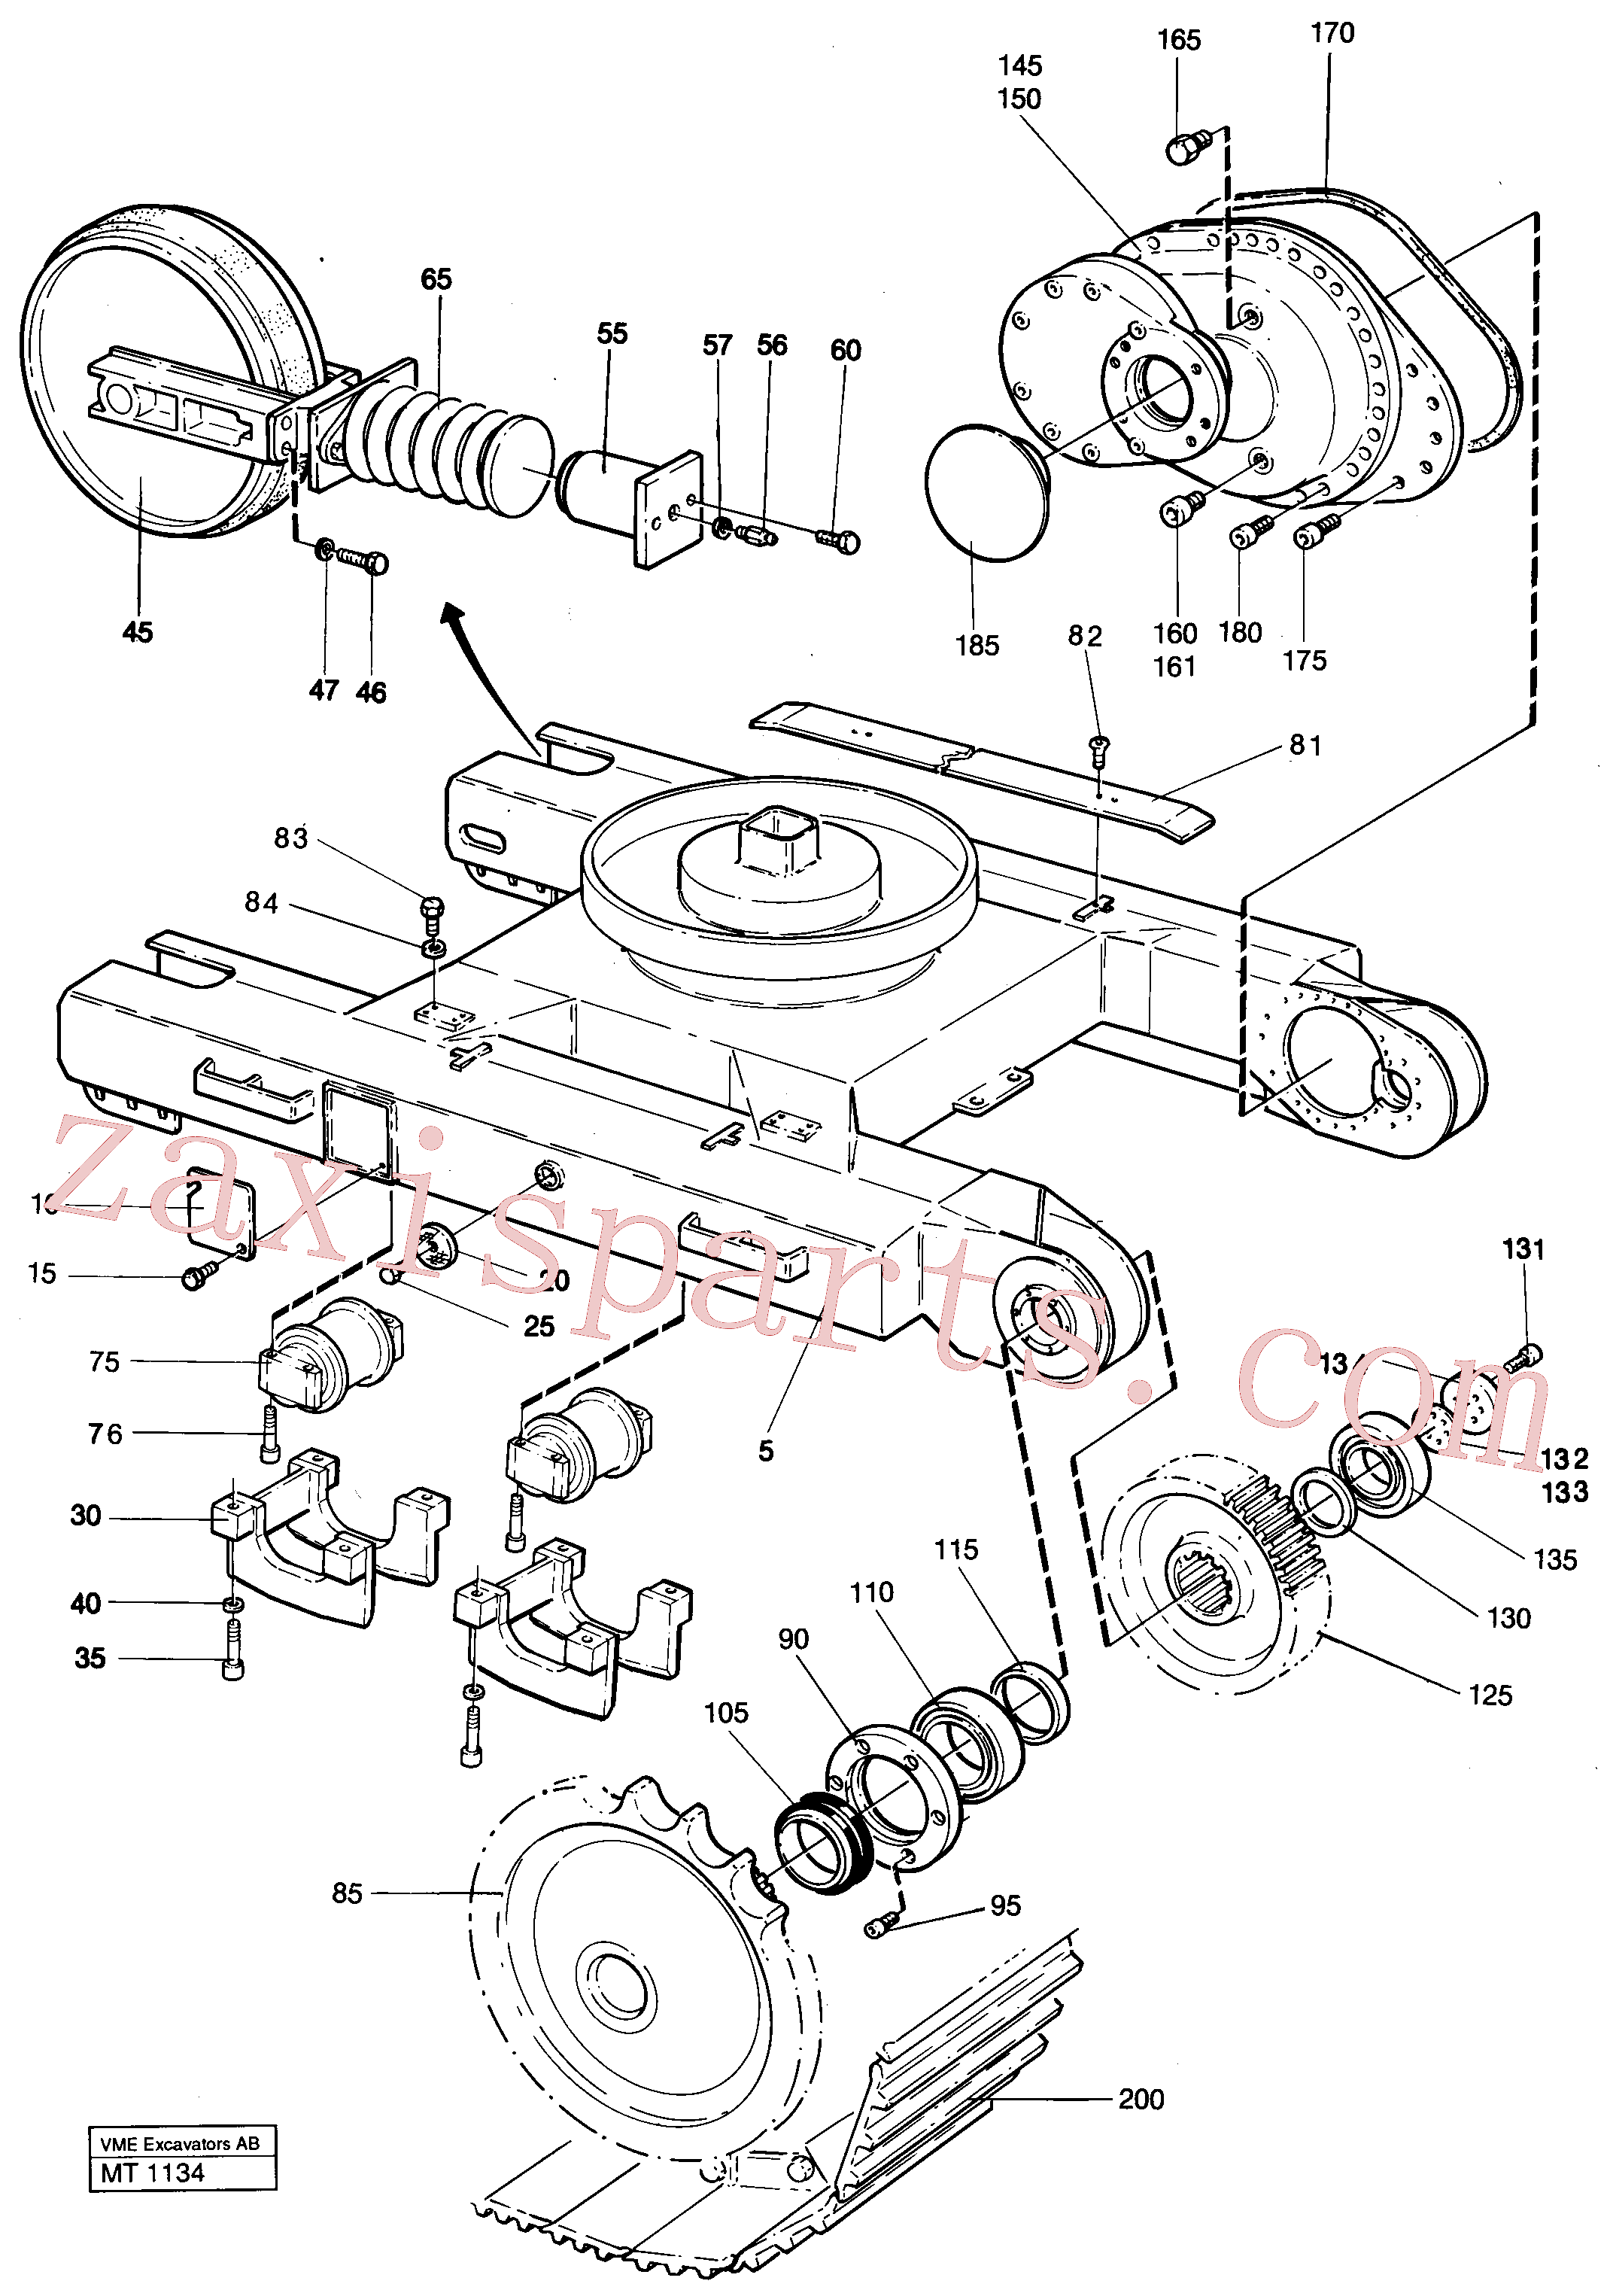 VOE4780974 for Volvo Undercarriage Ec 230 Undercarriage Ec 229(MT1134 assembly)